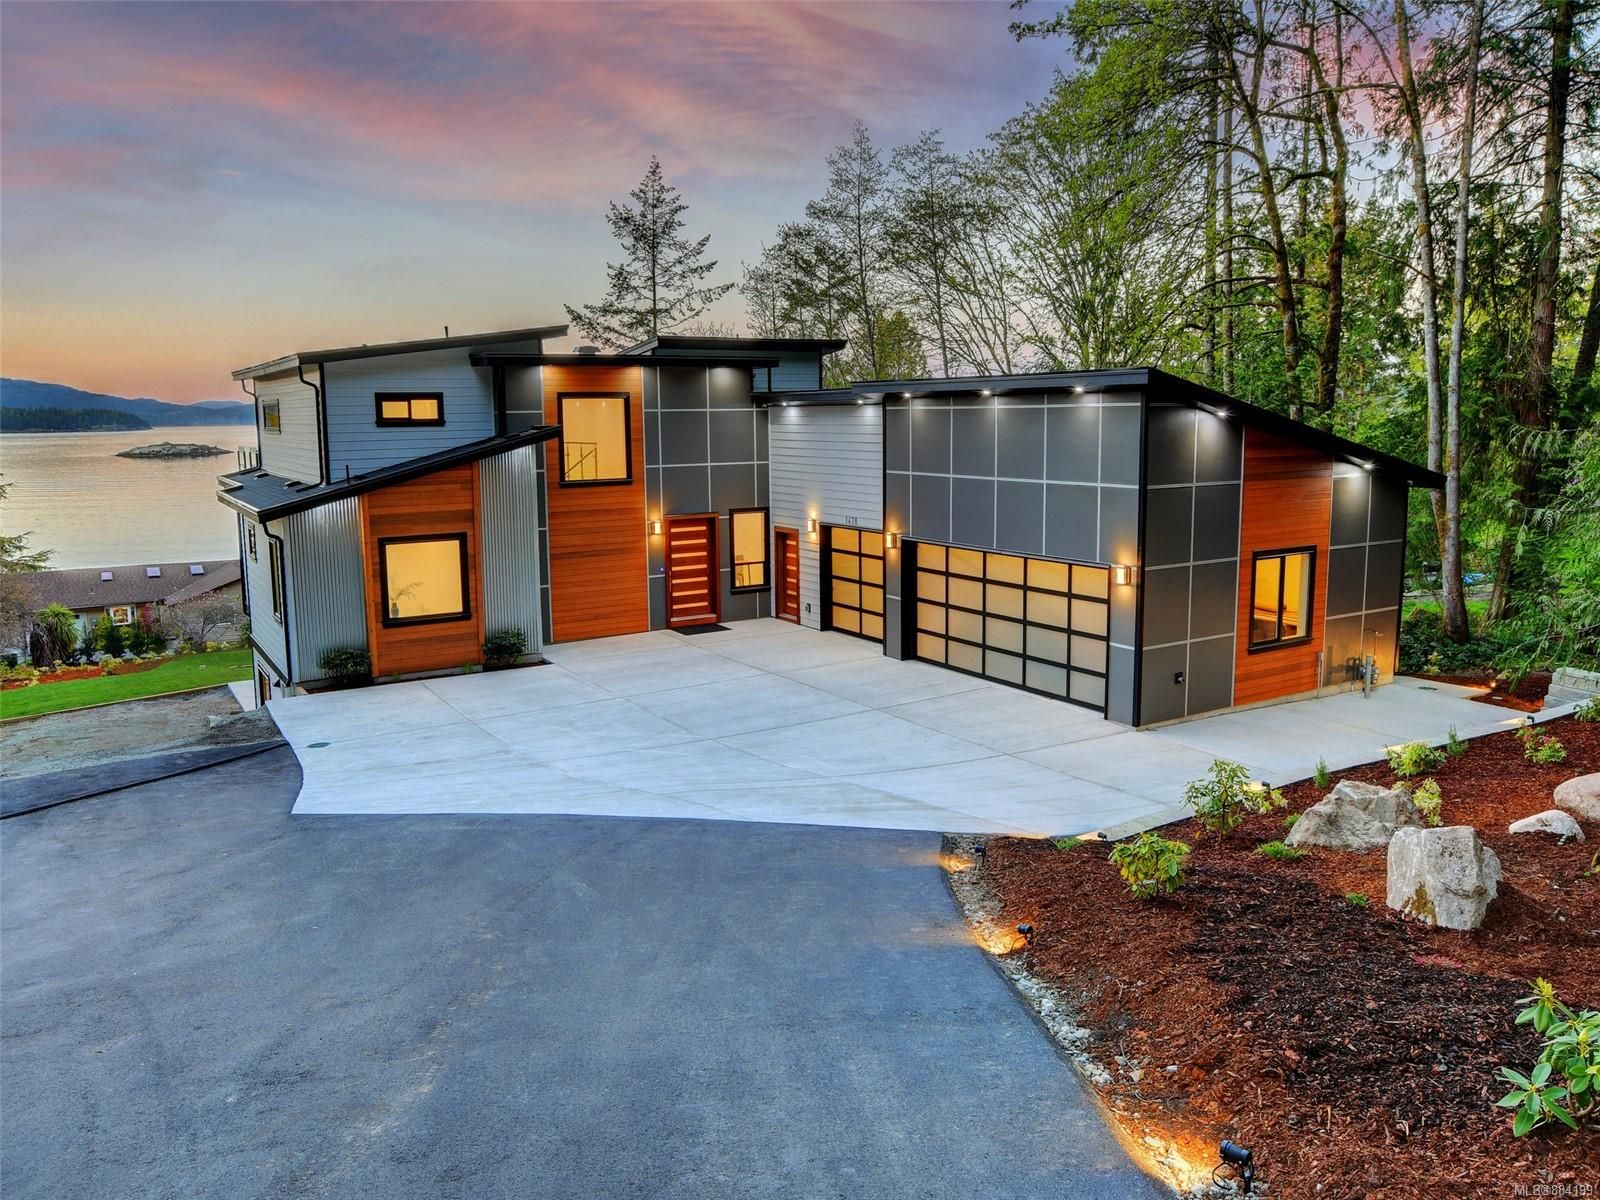 Main Photo: 1470 Lands End Rd in : NS Lands End House for sale (North Saanich)  : MLS®# 884199